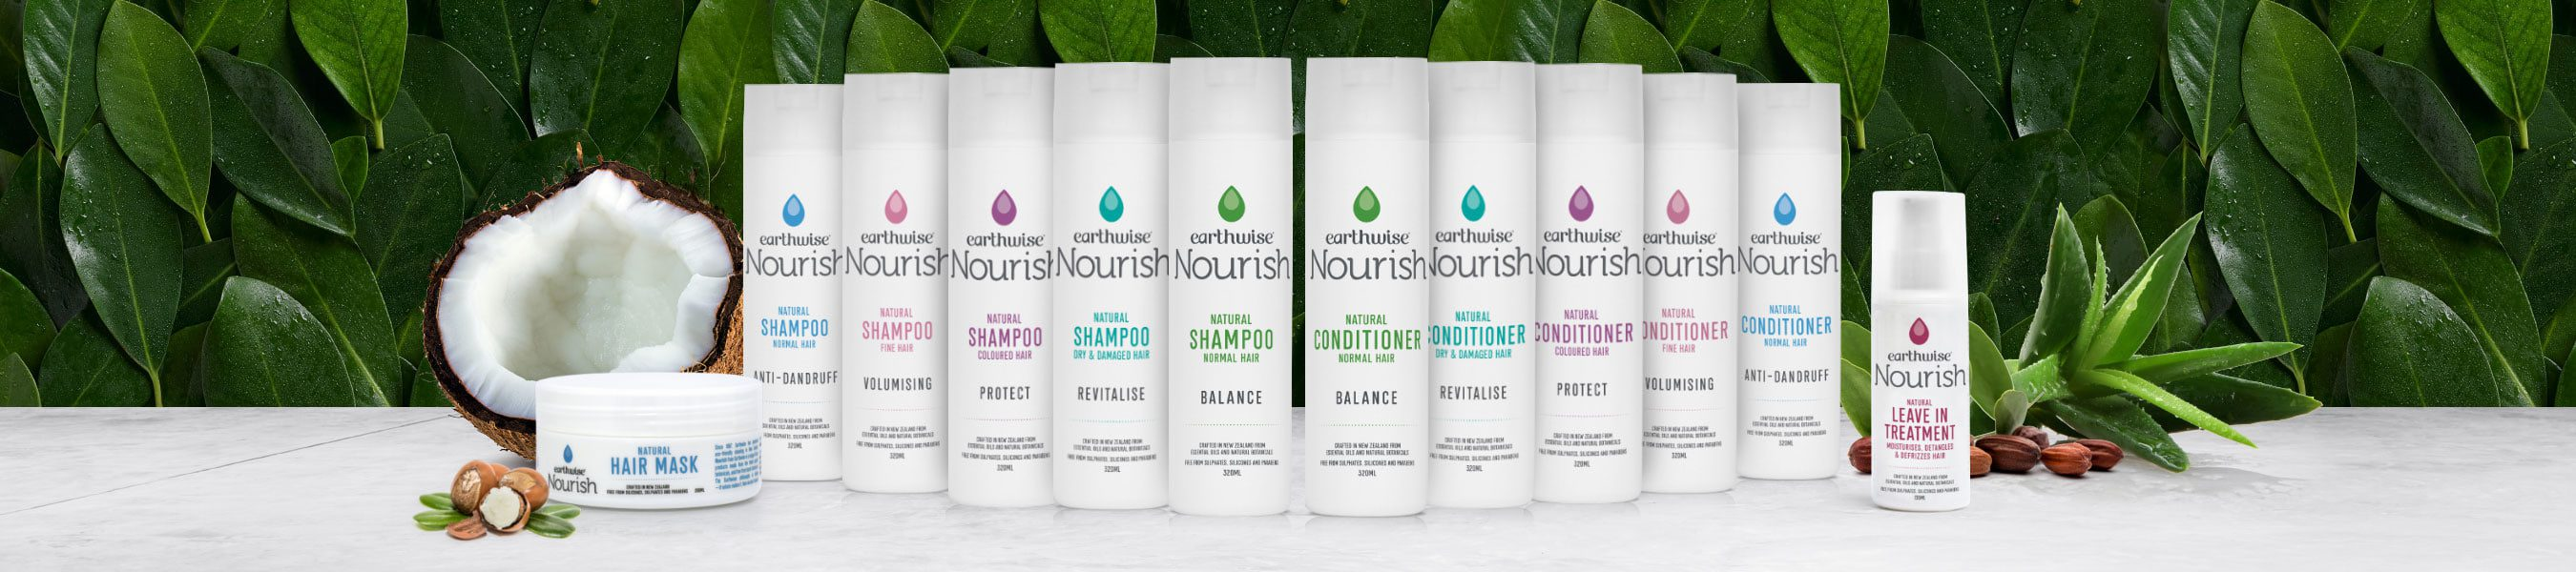 Earthwise Nourish Natural Hair Range